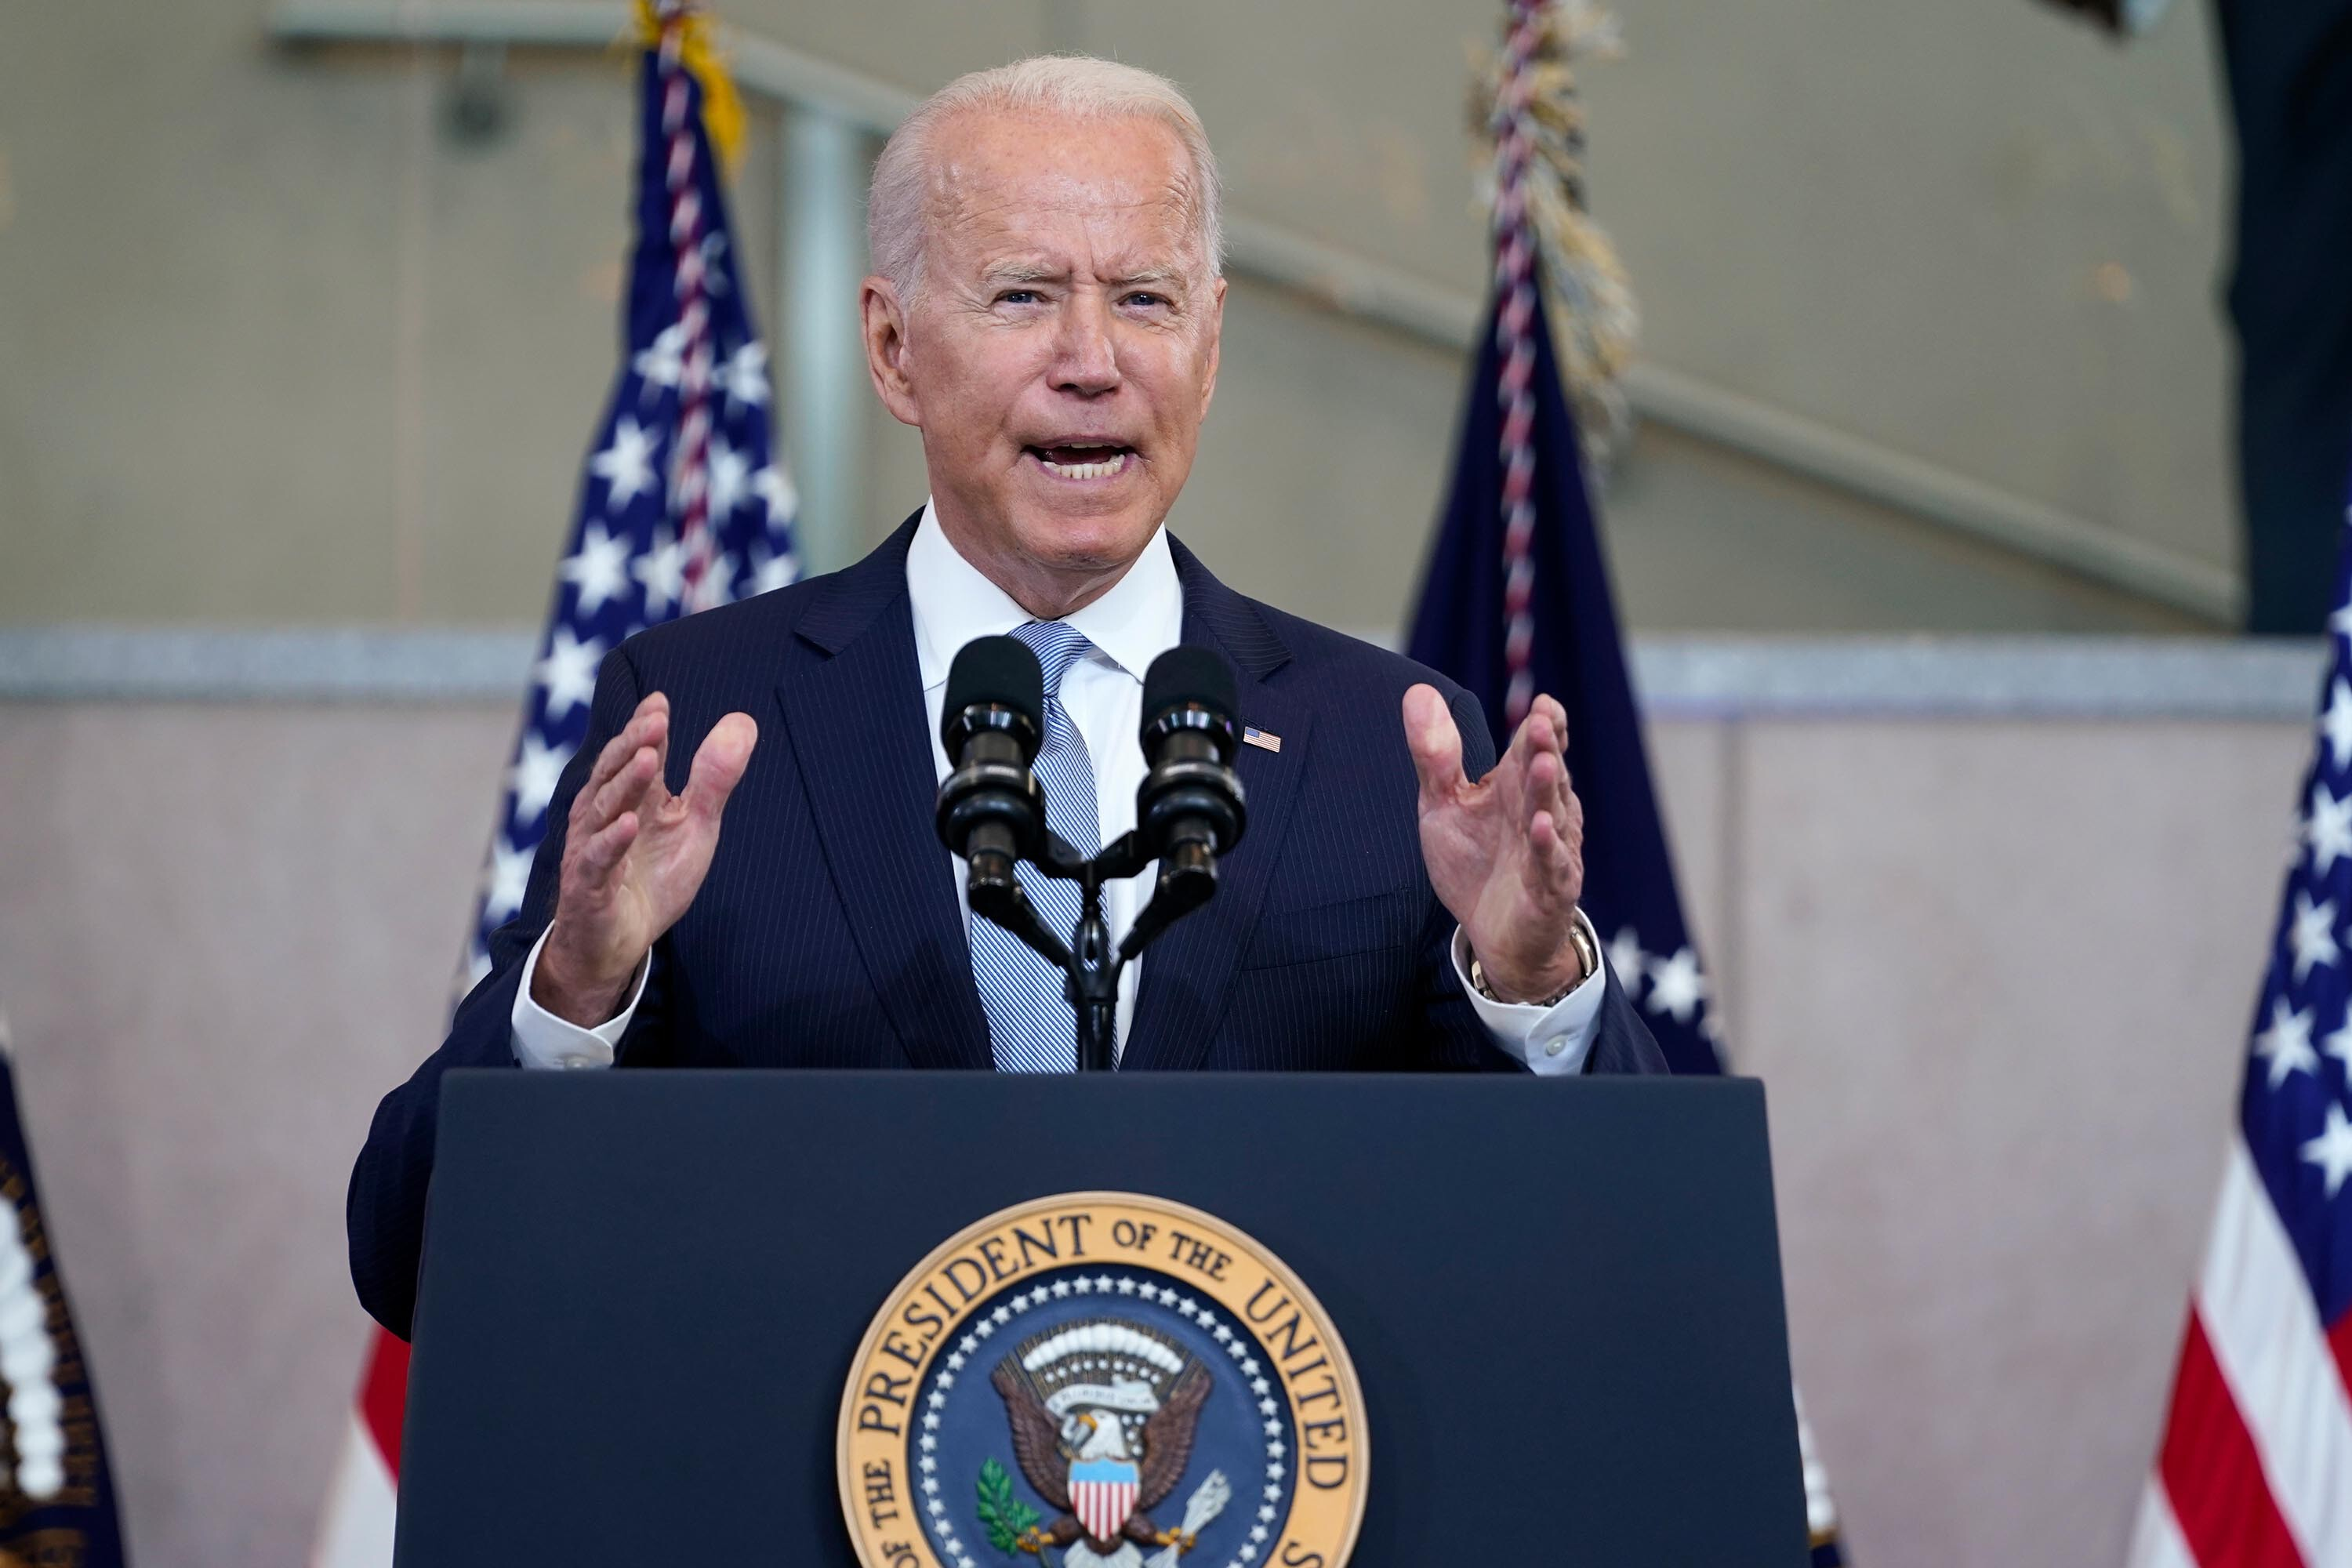 Biden takes on multiple crises without key confirmed officials at the helm